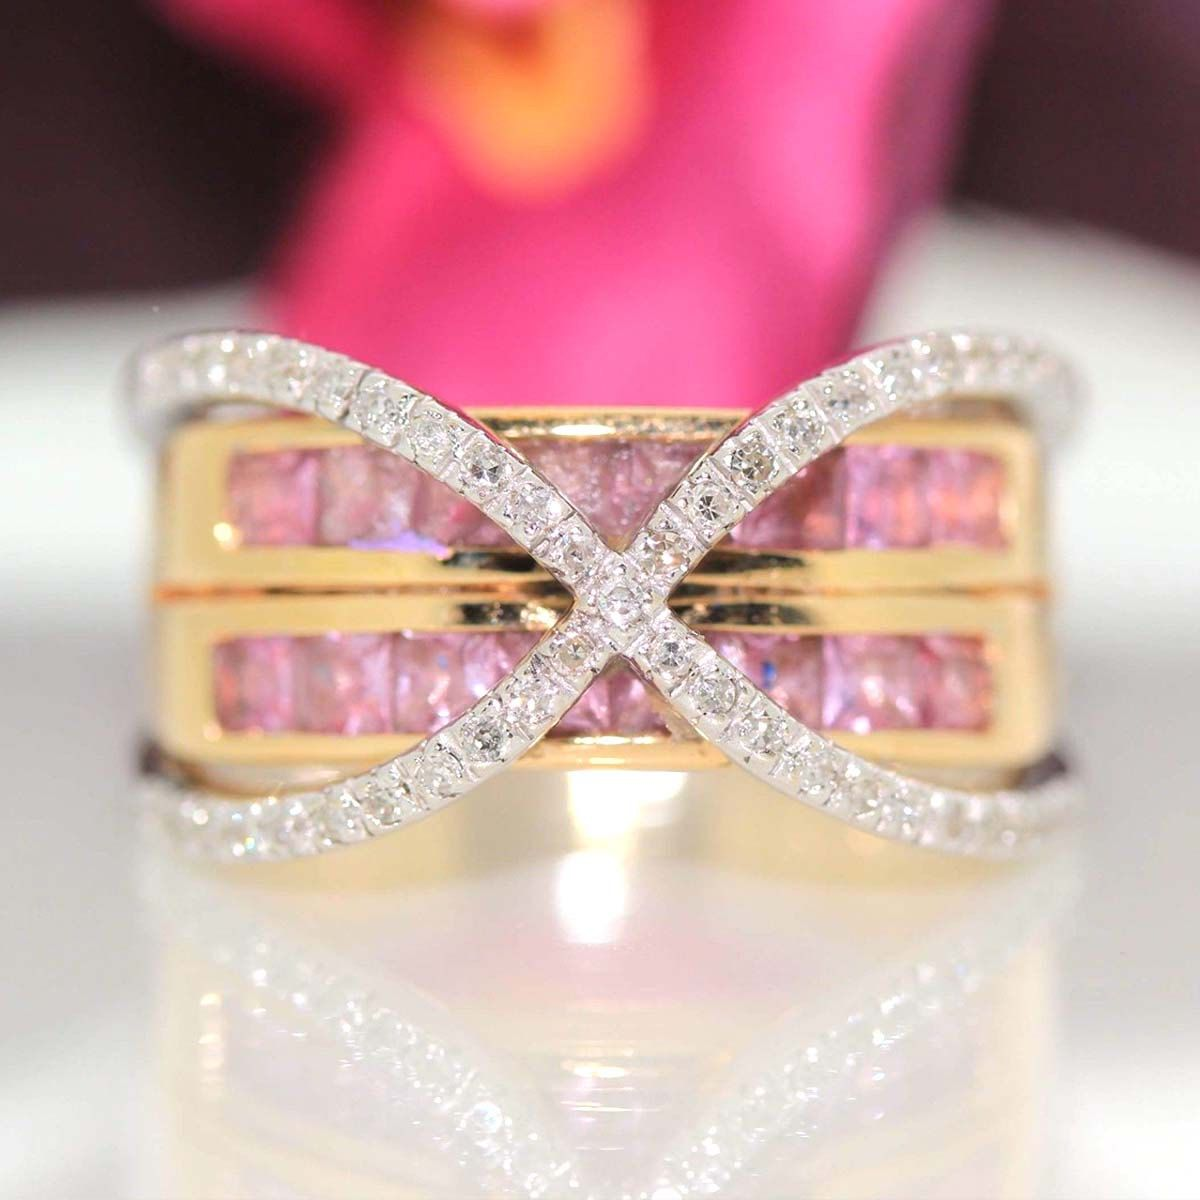 Breathtaking Jewelry With Vivid Colors and Dazzling Sparkles At ...